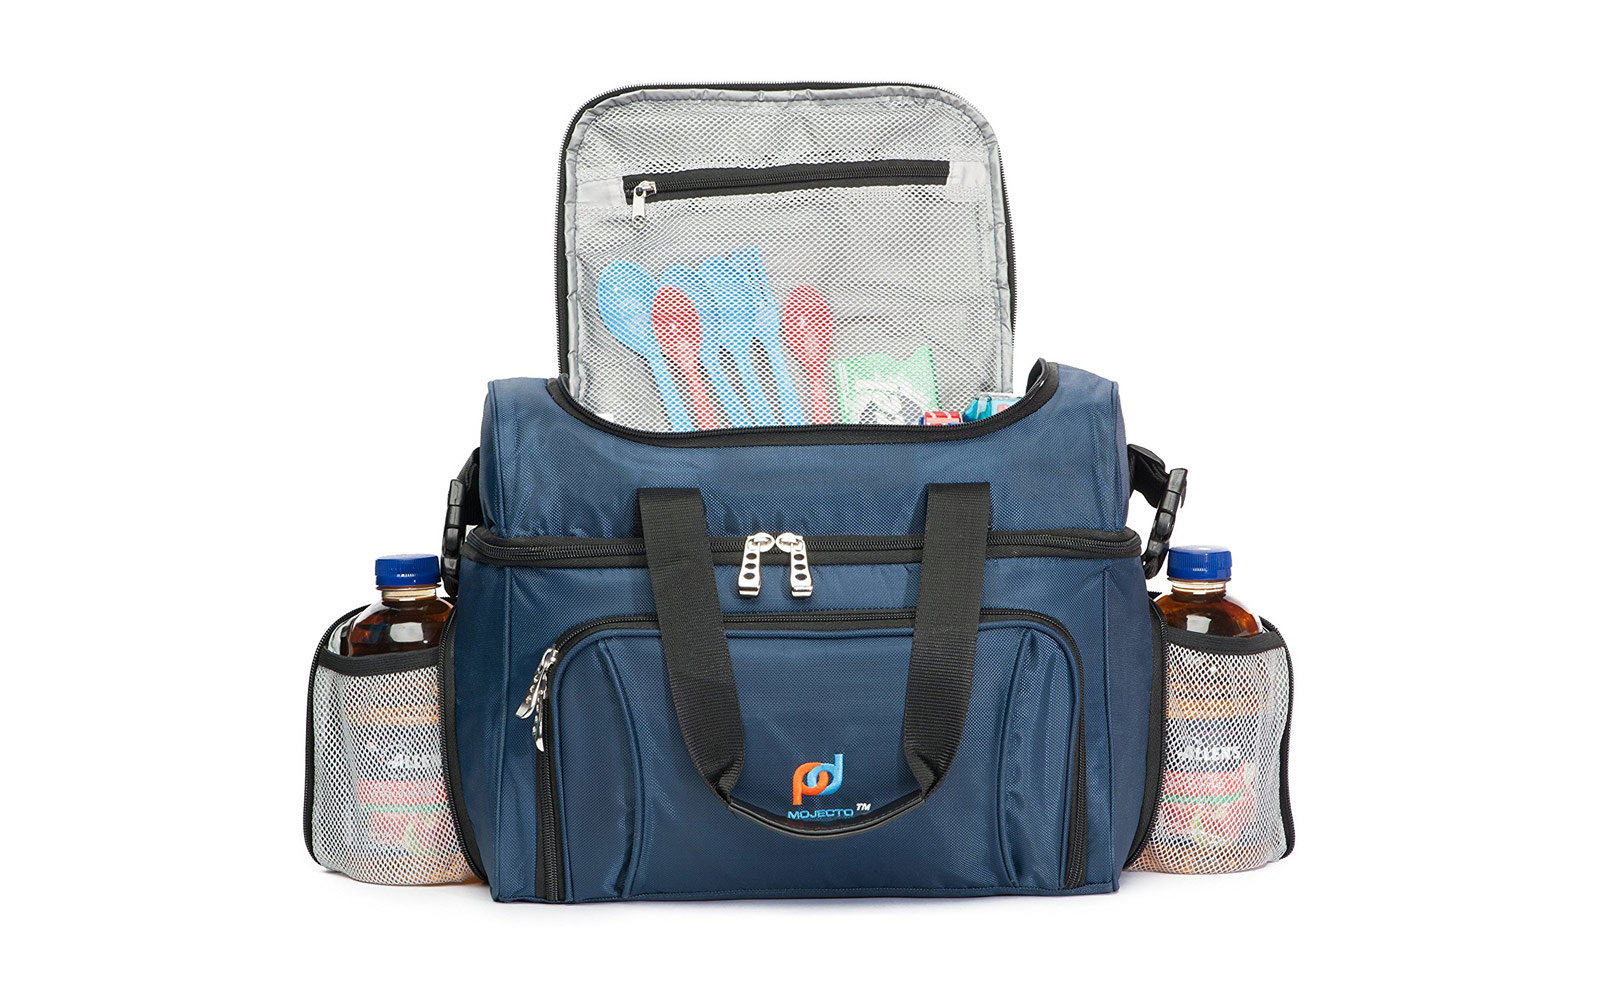 The Best Insulated Cooler Bags for Travel | Travel   Leisure